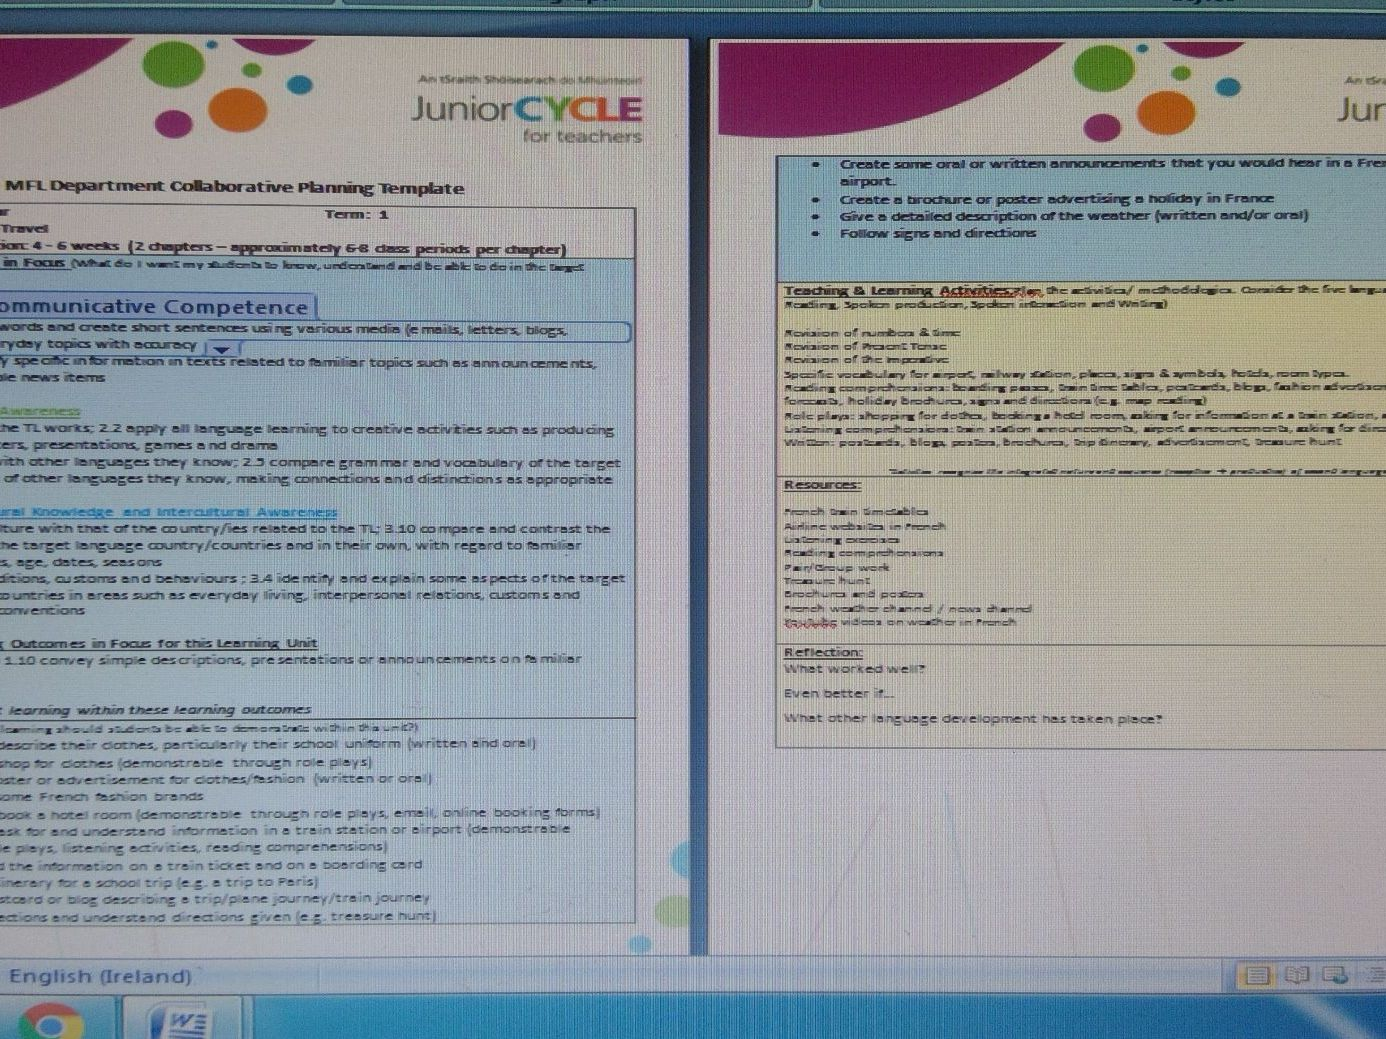 Learning units for 3rd Year MFL (French, German, Spanish)